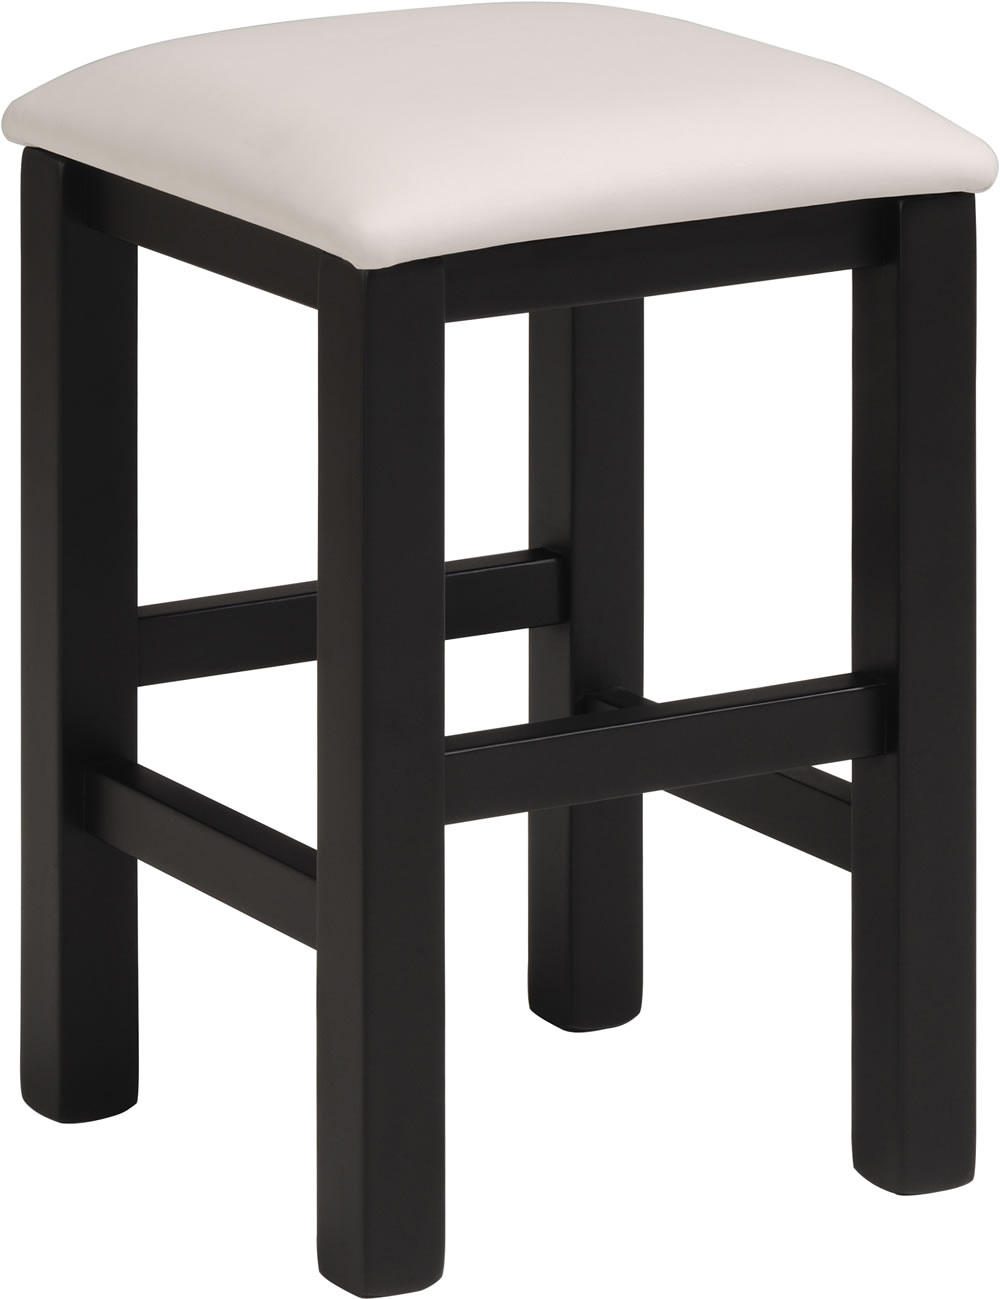 parisot beauty bar dressing table stool